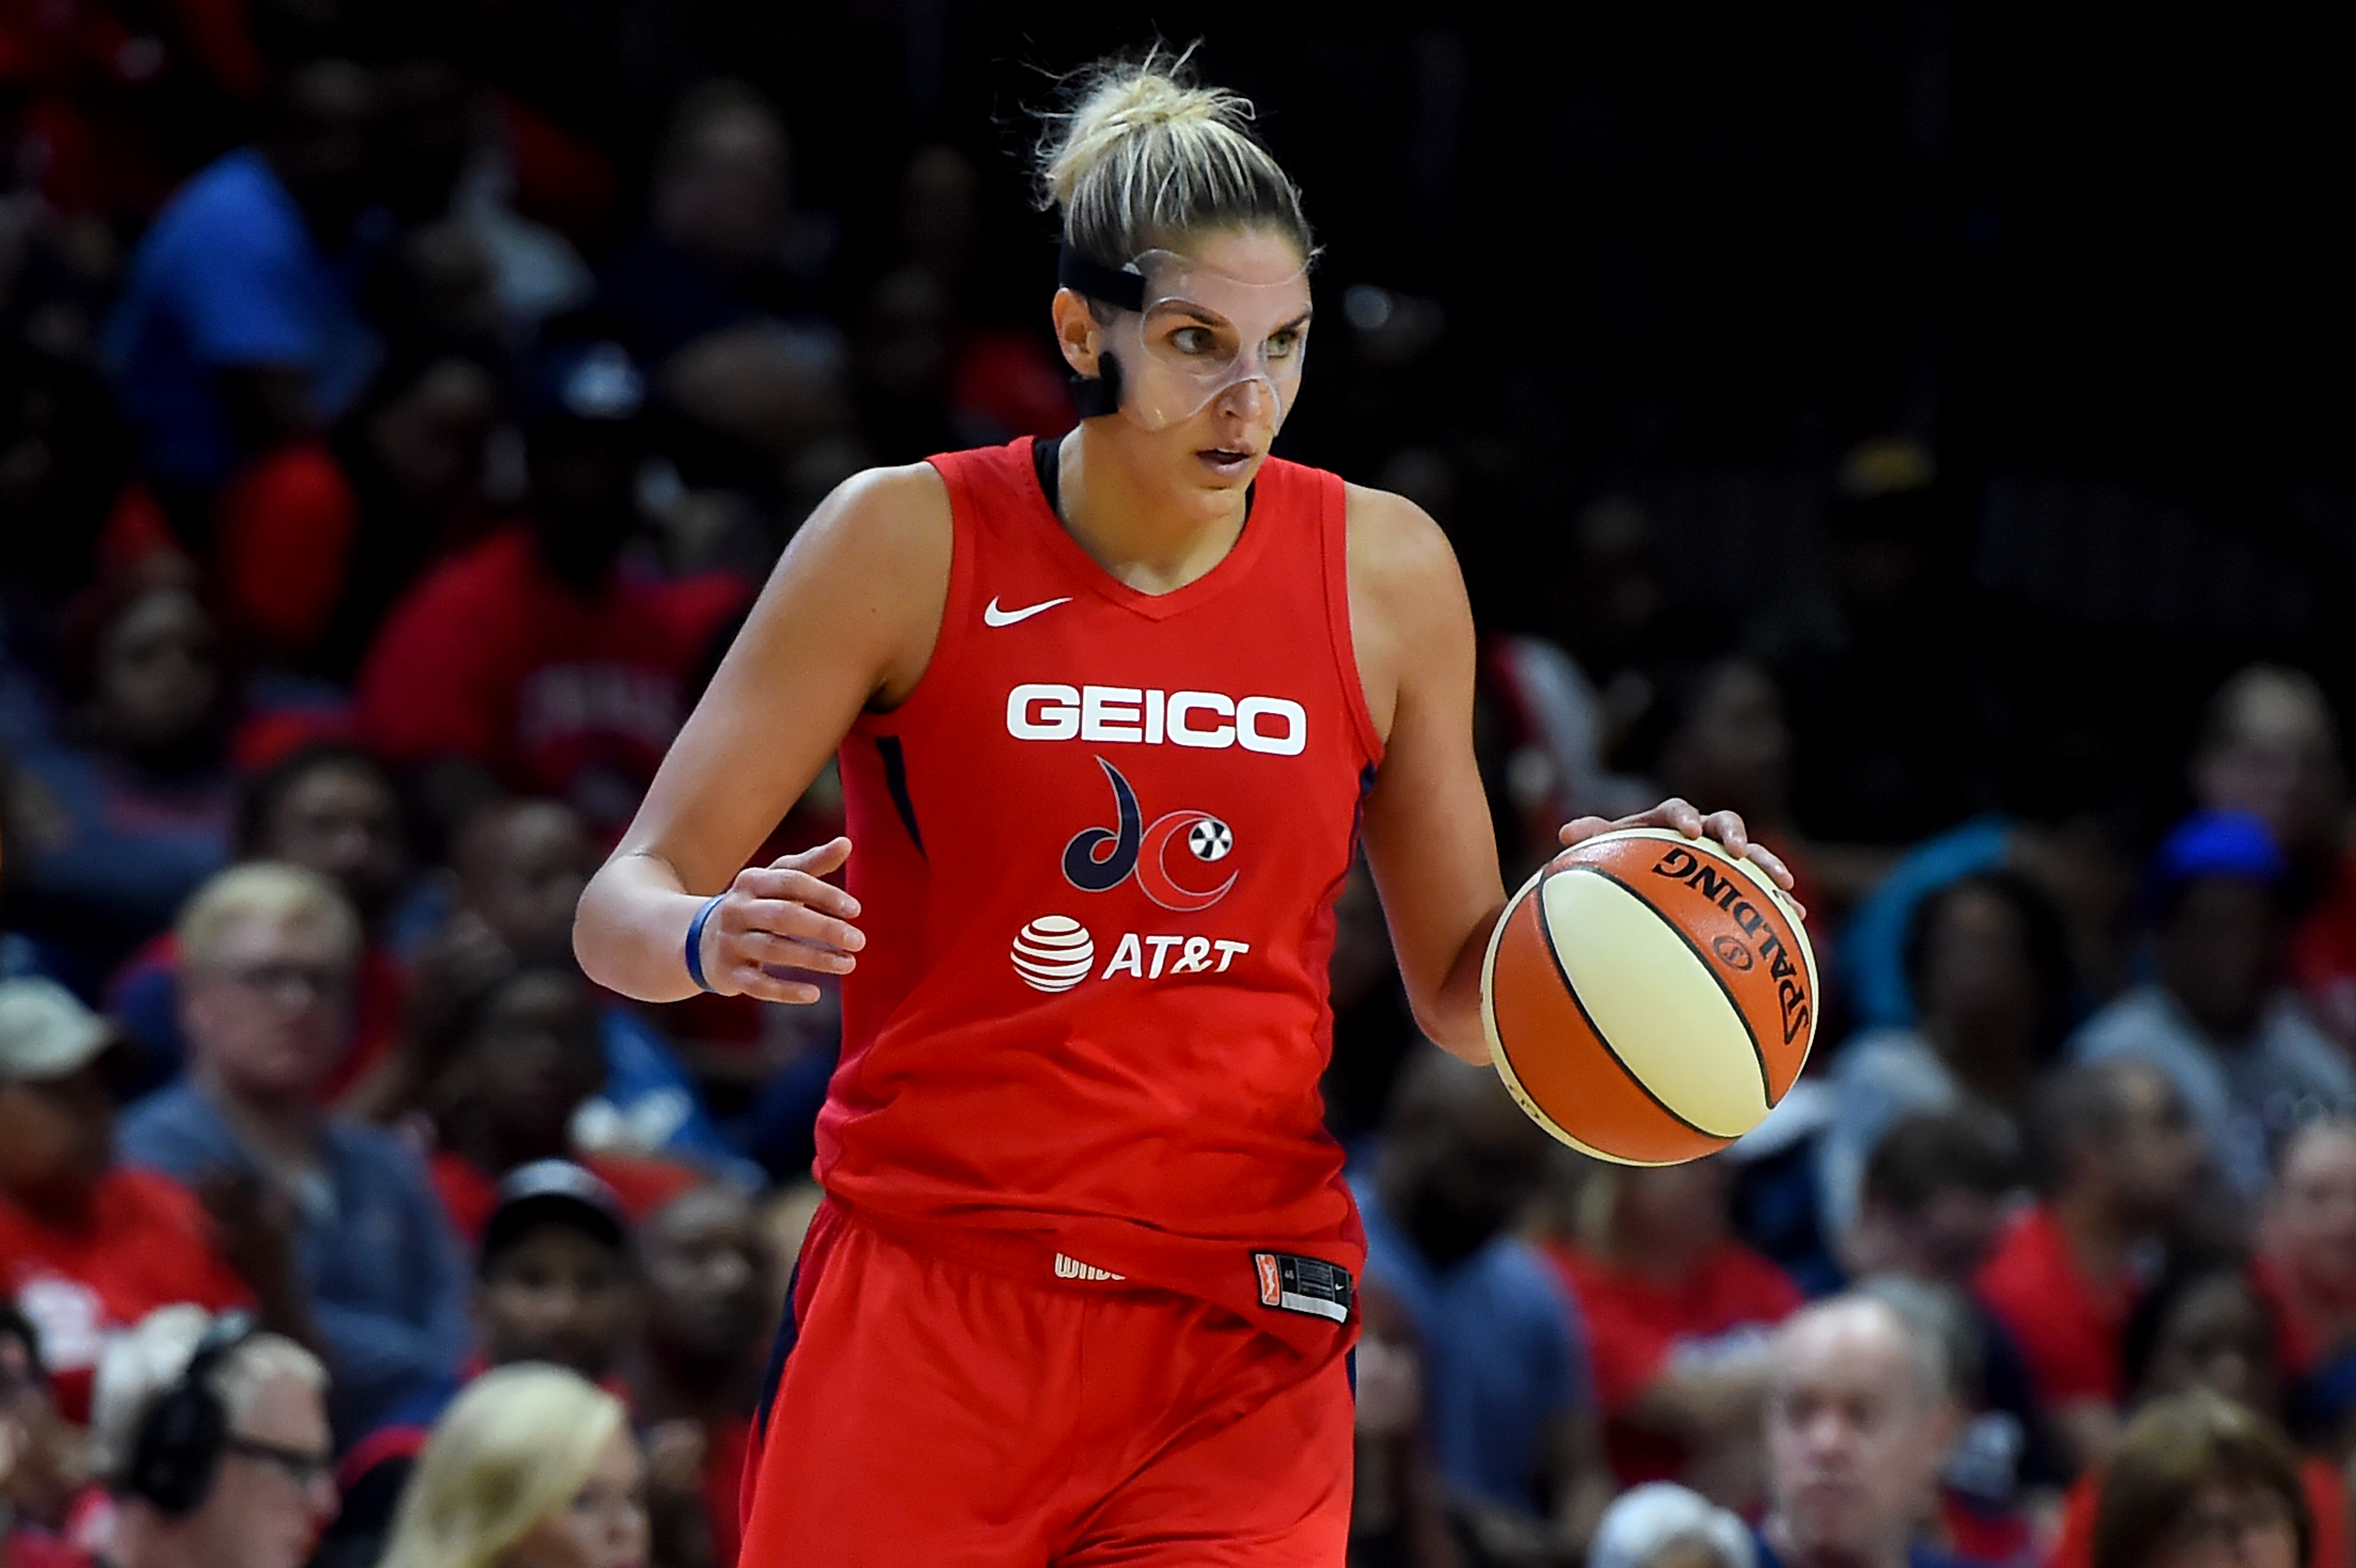 Elena Delle Donne on her WNBA season medical opt-out request being denied: 'I was shocked'